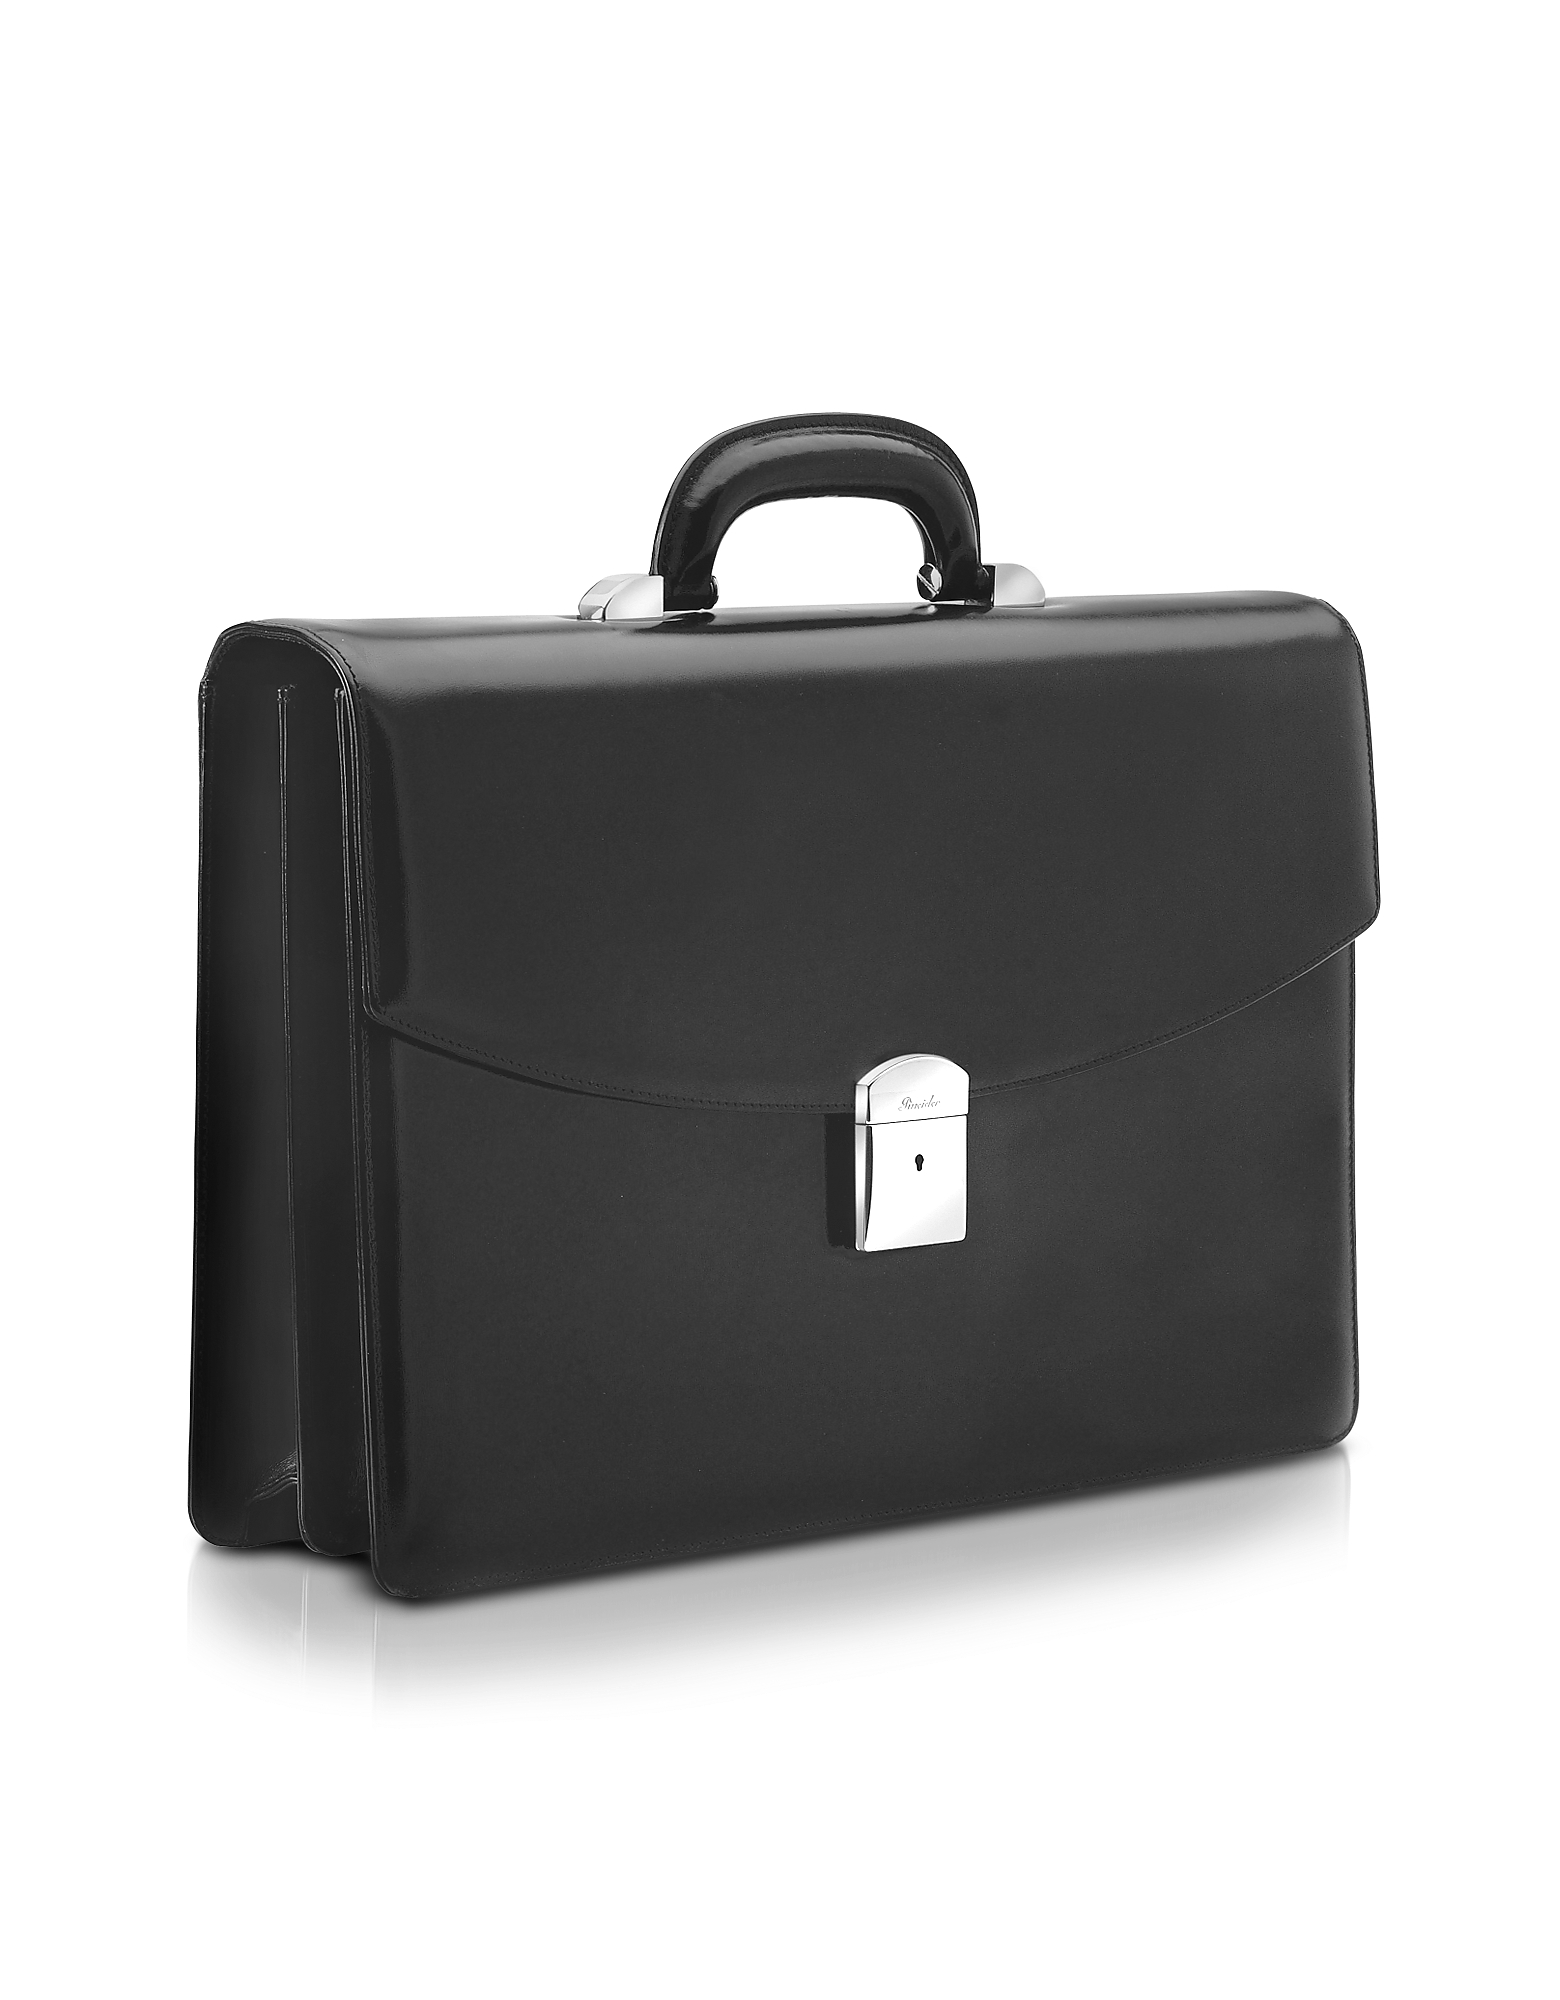 Pineider Briefcases, 1949 - Black Calfskin Double Gusset Briefcase